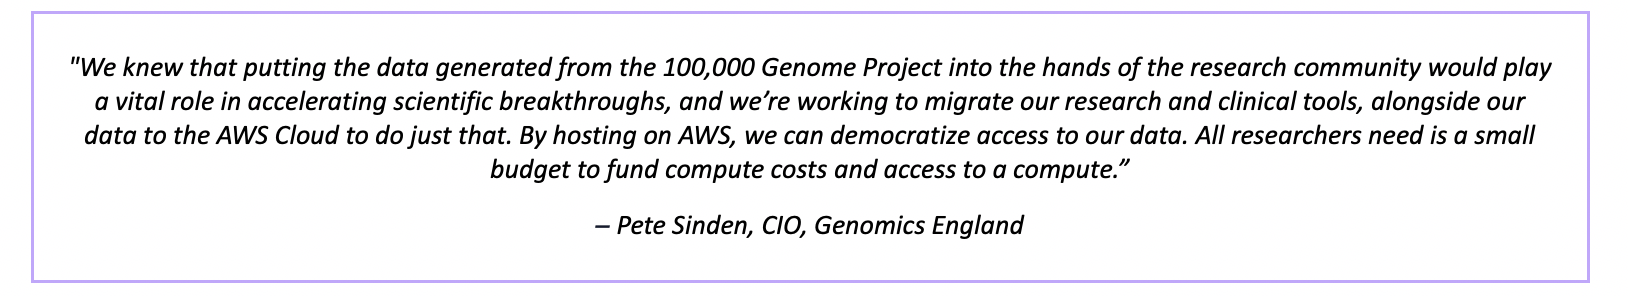 """""""We knew that putting the data generated from the 100,000 Genome Project into the hands of the research community would play a vital role in accelerating scientific breakthroughs, and we're working to migrate our research and clinical tools, alongside our data to the AWS Cloud to do just that. By hosting on AWS, we can democratize access to our data. All researchers need is a small budget to fund compute costs and access to a compute."""" – Pete Sinden, CIO, Genomics England"""